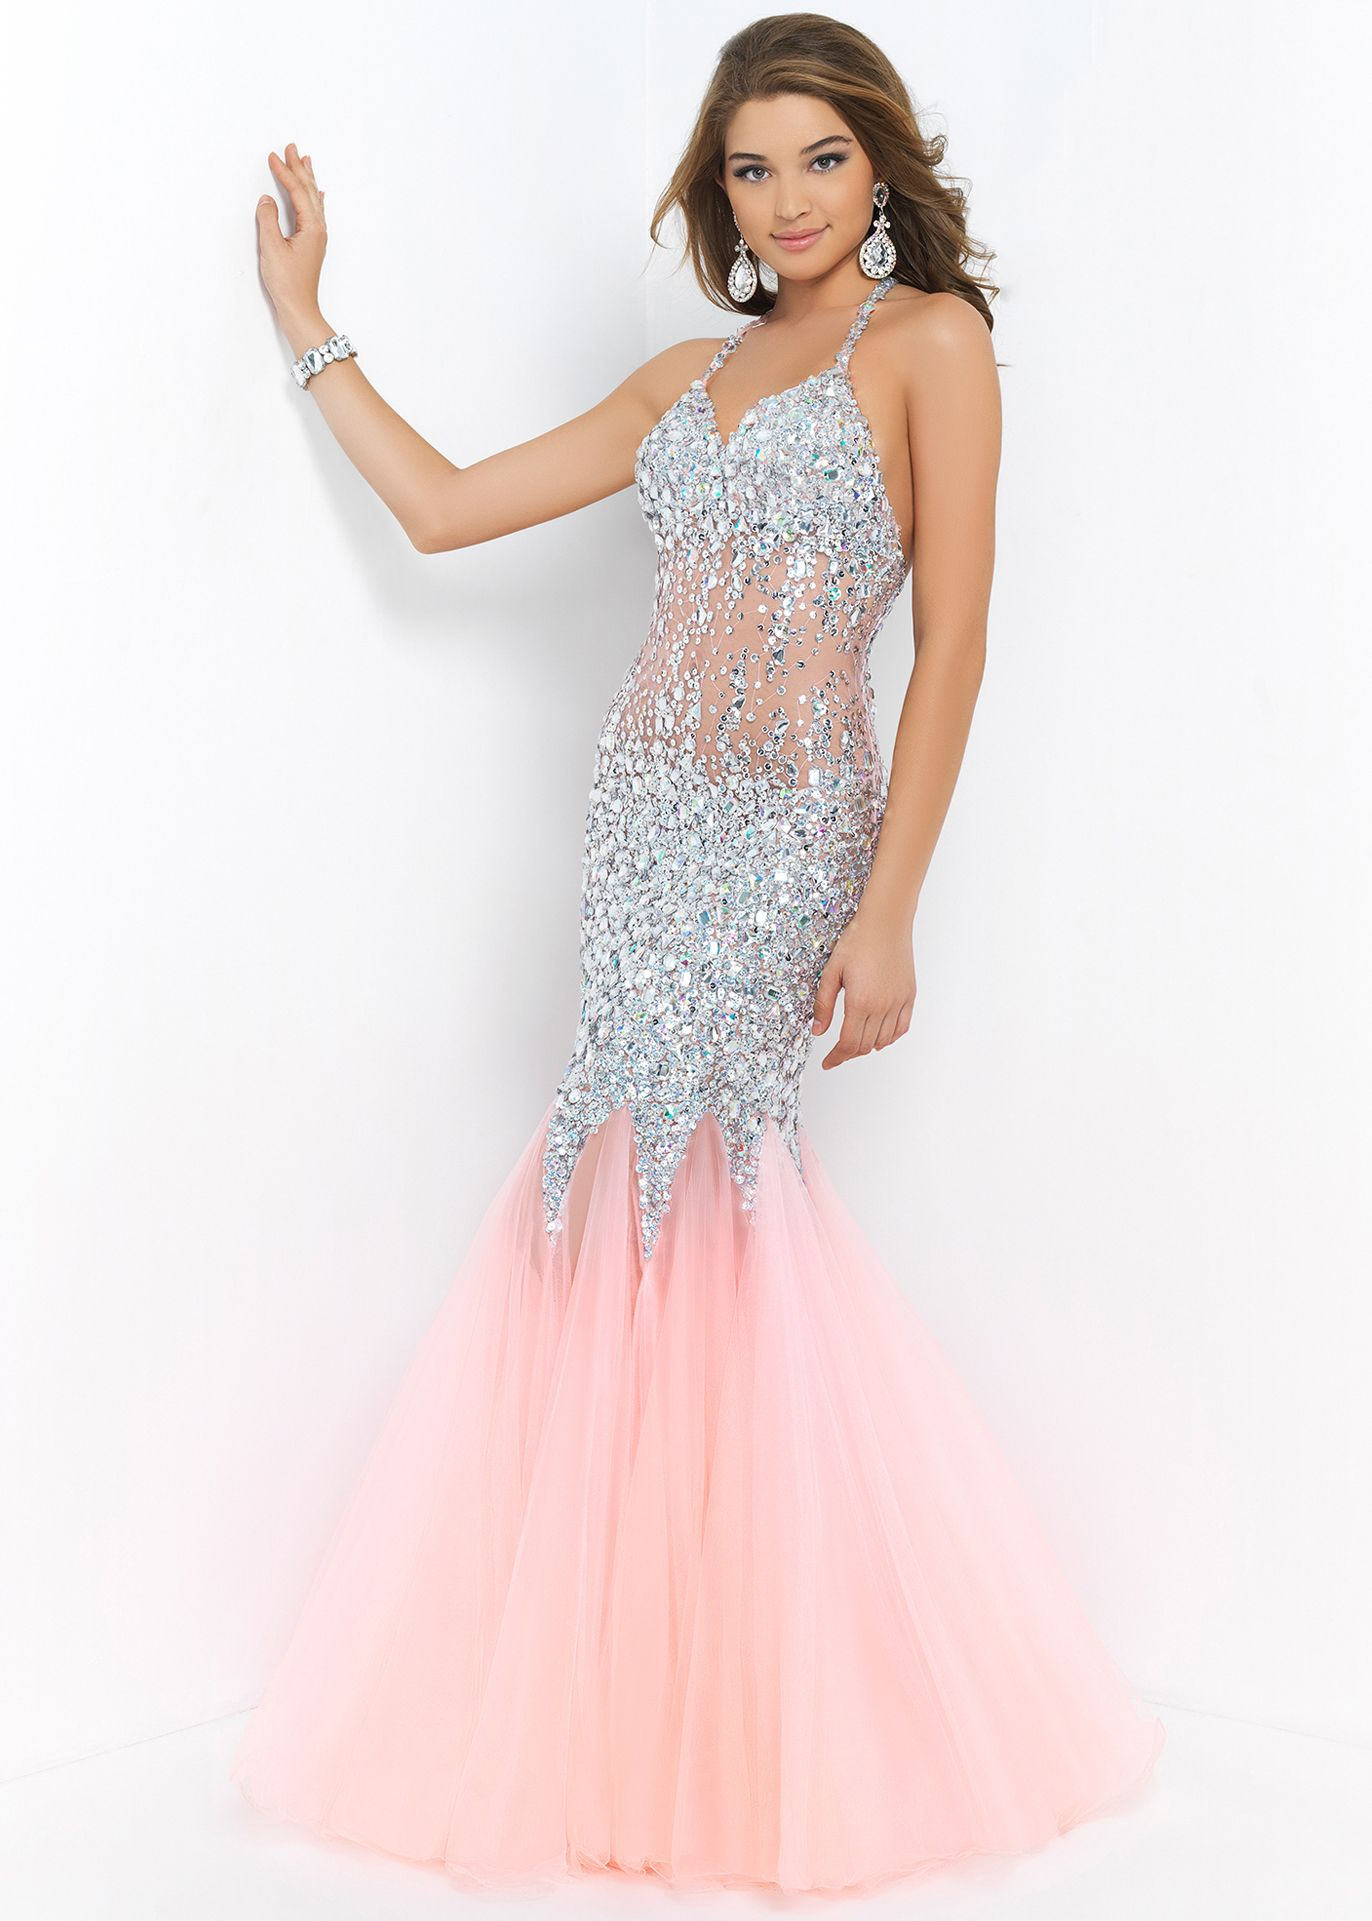 Sparkling Coral and Silver Open Back Prom Gown - Blush Prom 9702 ...